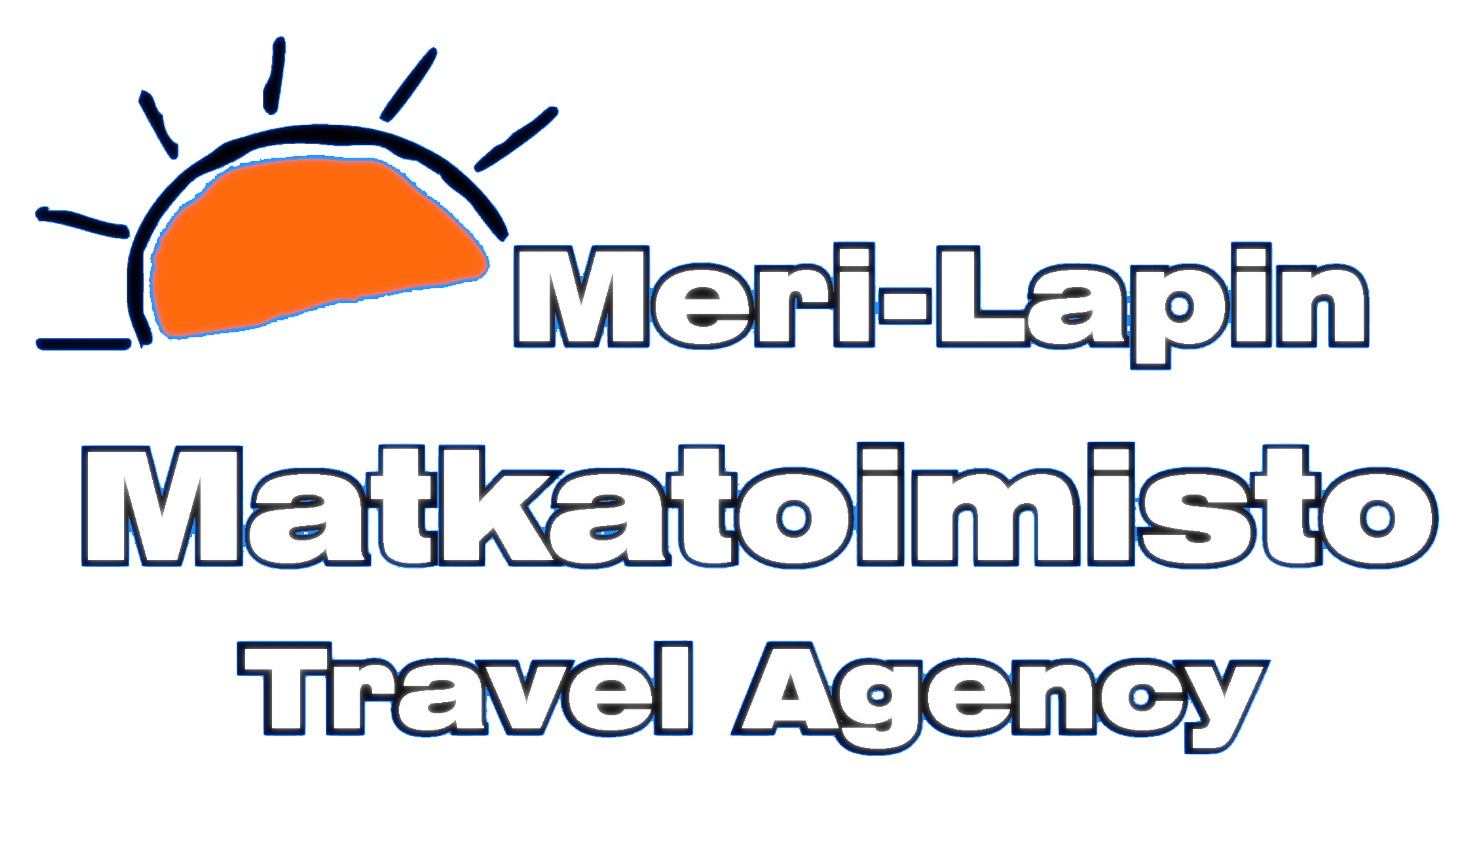 Sealapland-Travel-Agency